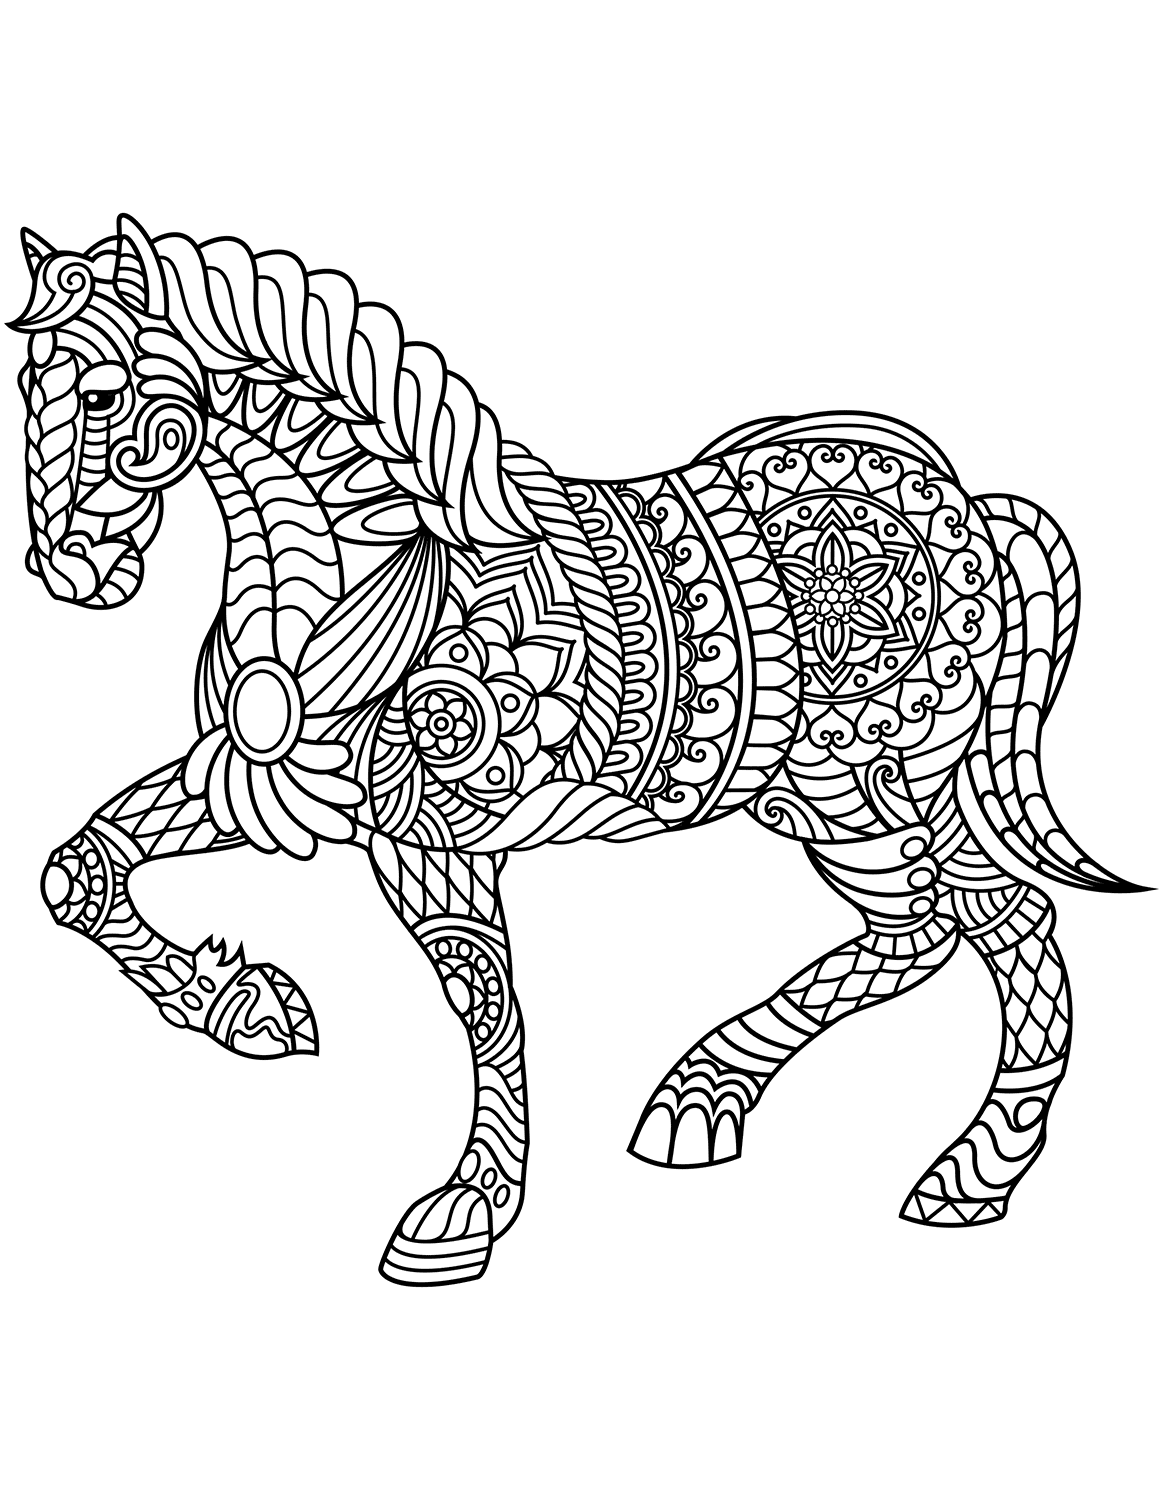 adult coloring pages animals wolf adult coloring page animal coloring pages mandala adult coloring pages animals